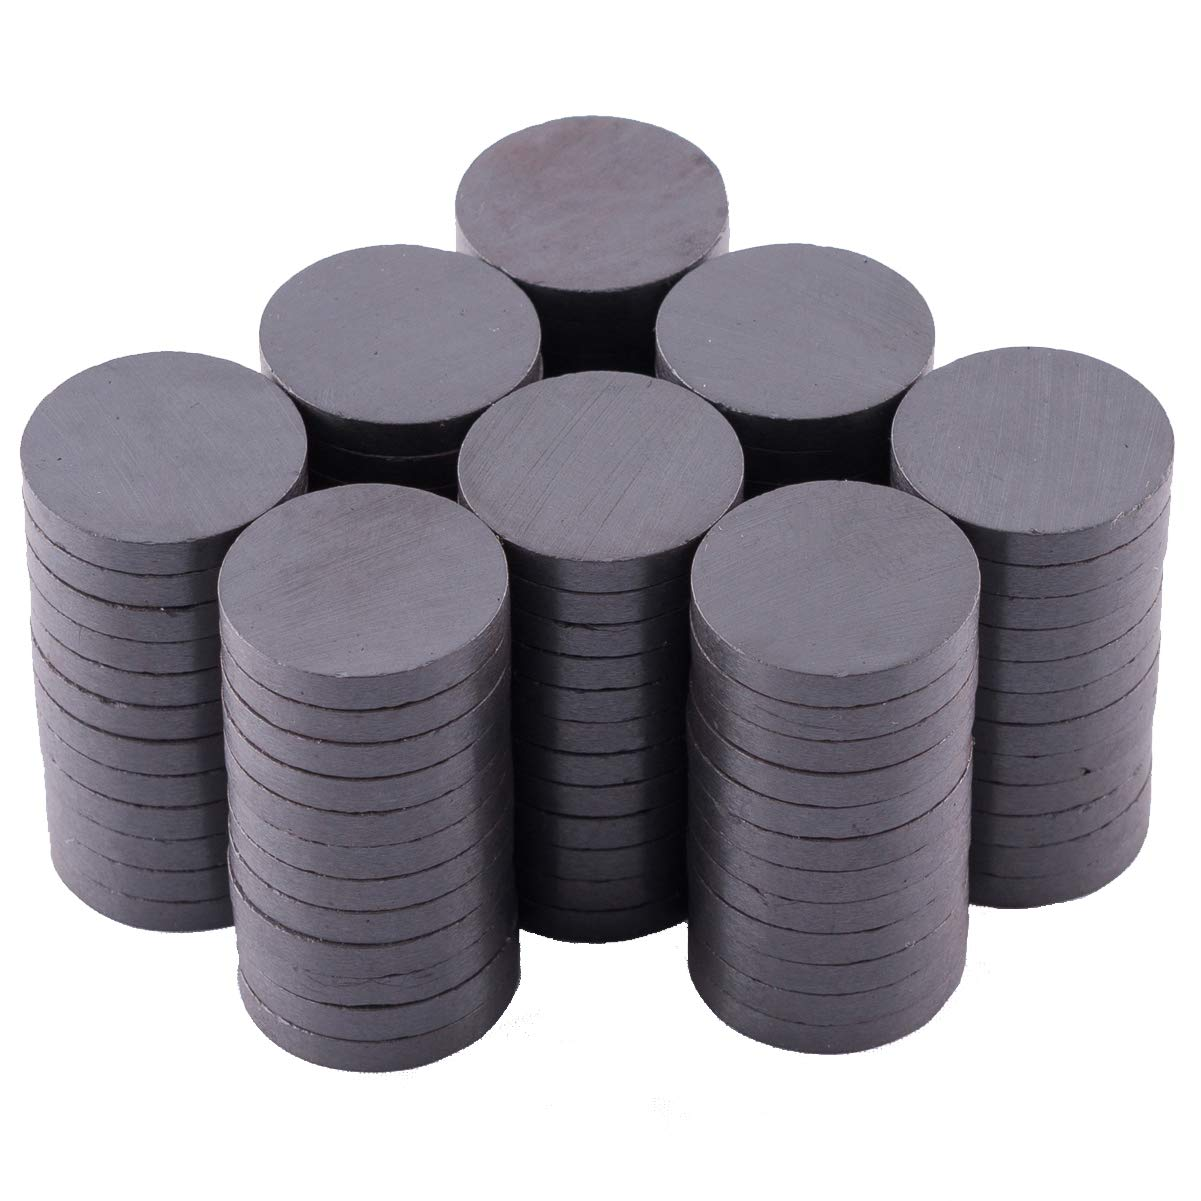 Skilled Crafter Strong Magnets for Crafts. 100 in a Box. Grade 5, 20mm x 3mm (13/16'). Round Ferrite / Ceramic Disc Magnet. Best for Art & Craft Projects, Refrigerator, Whiteboard, Bottle Cap, Science 56068972E76DA4A6